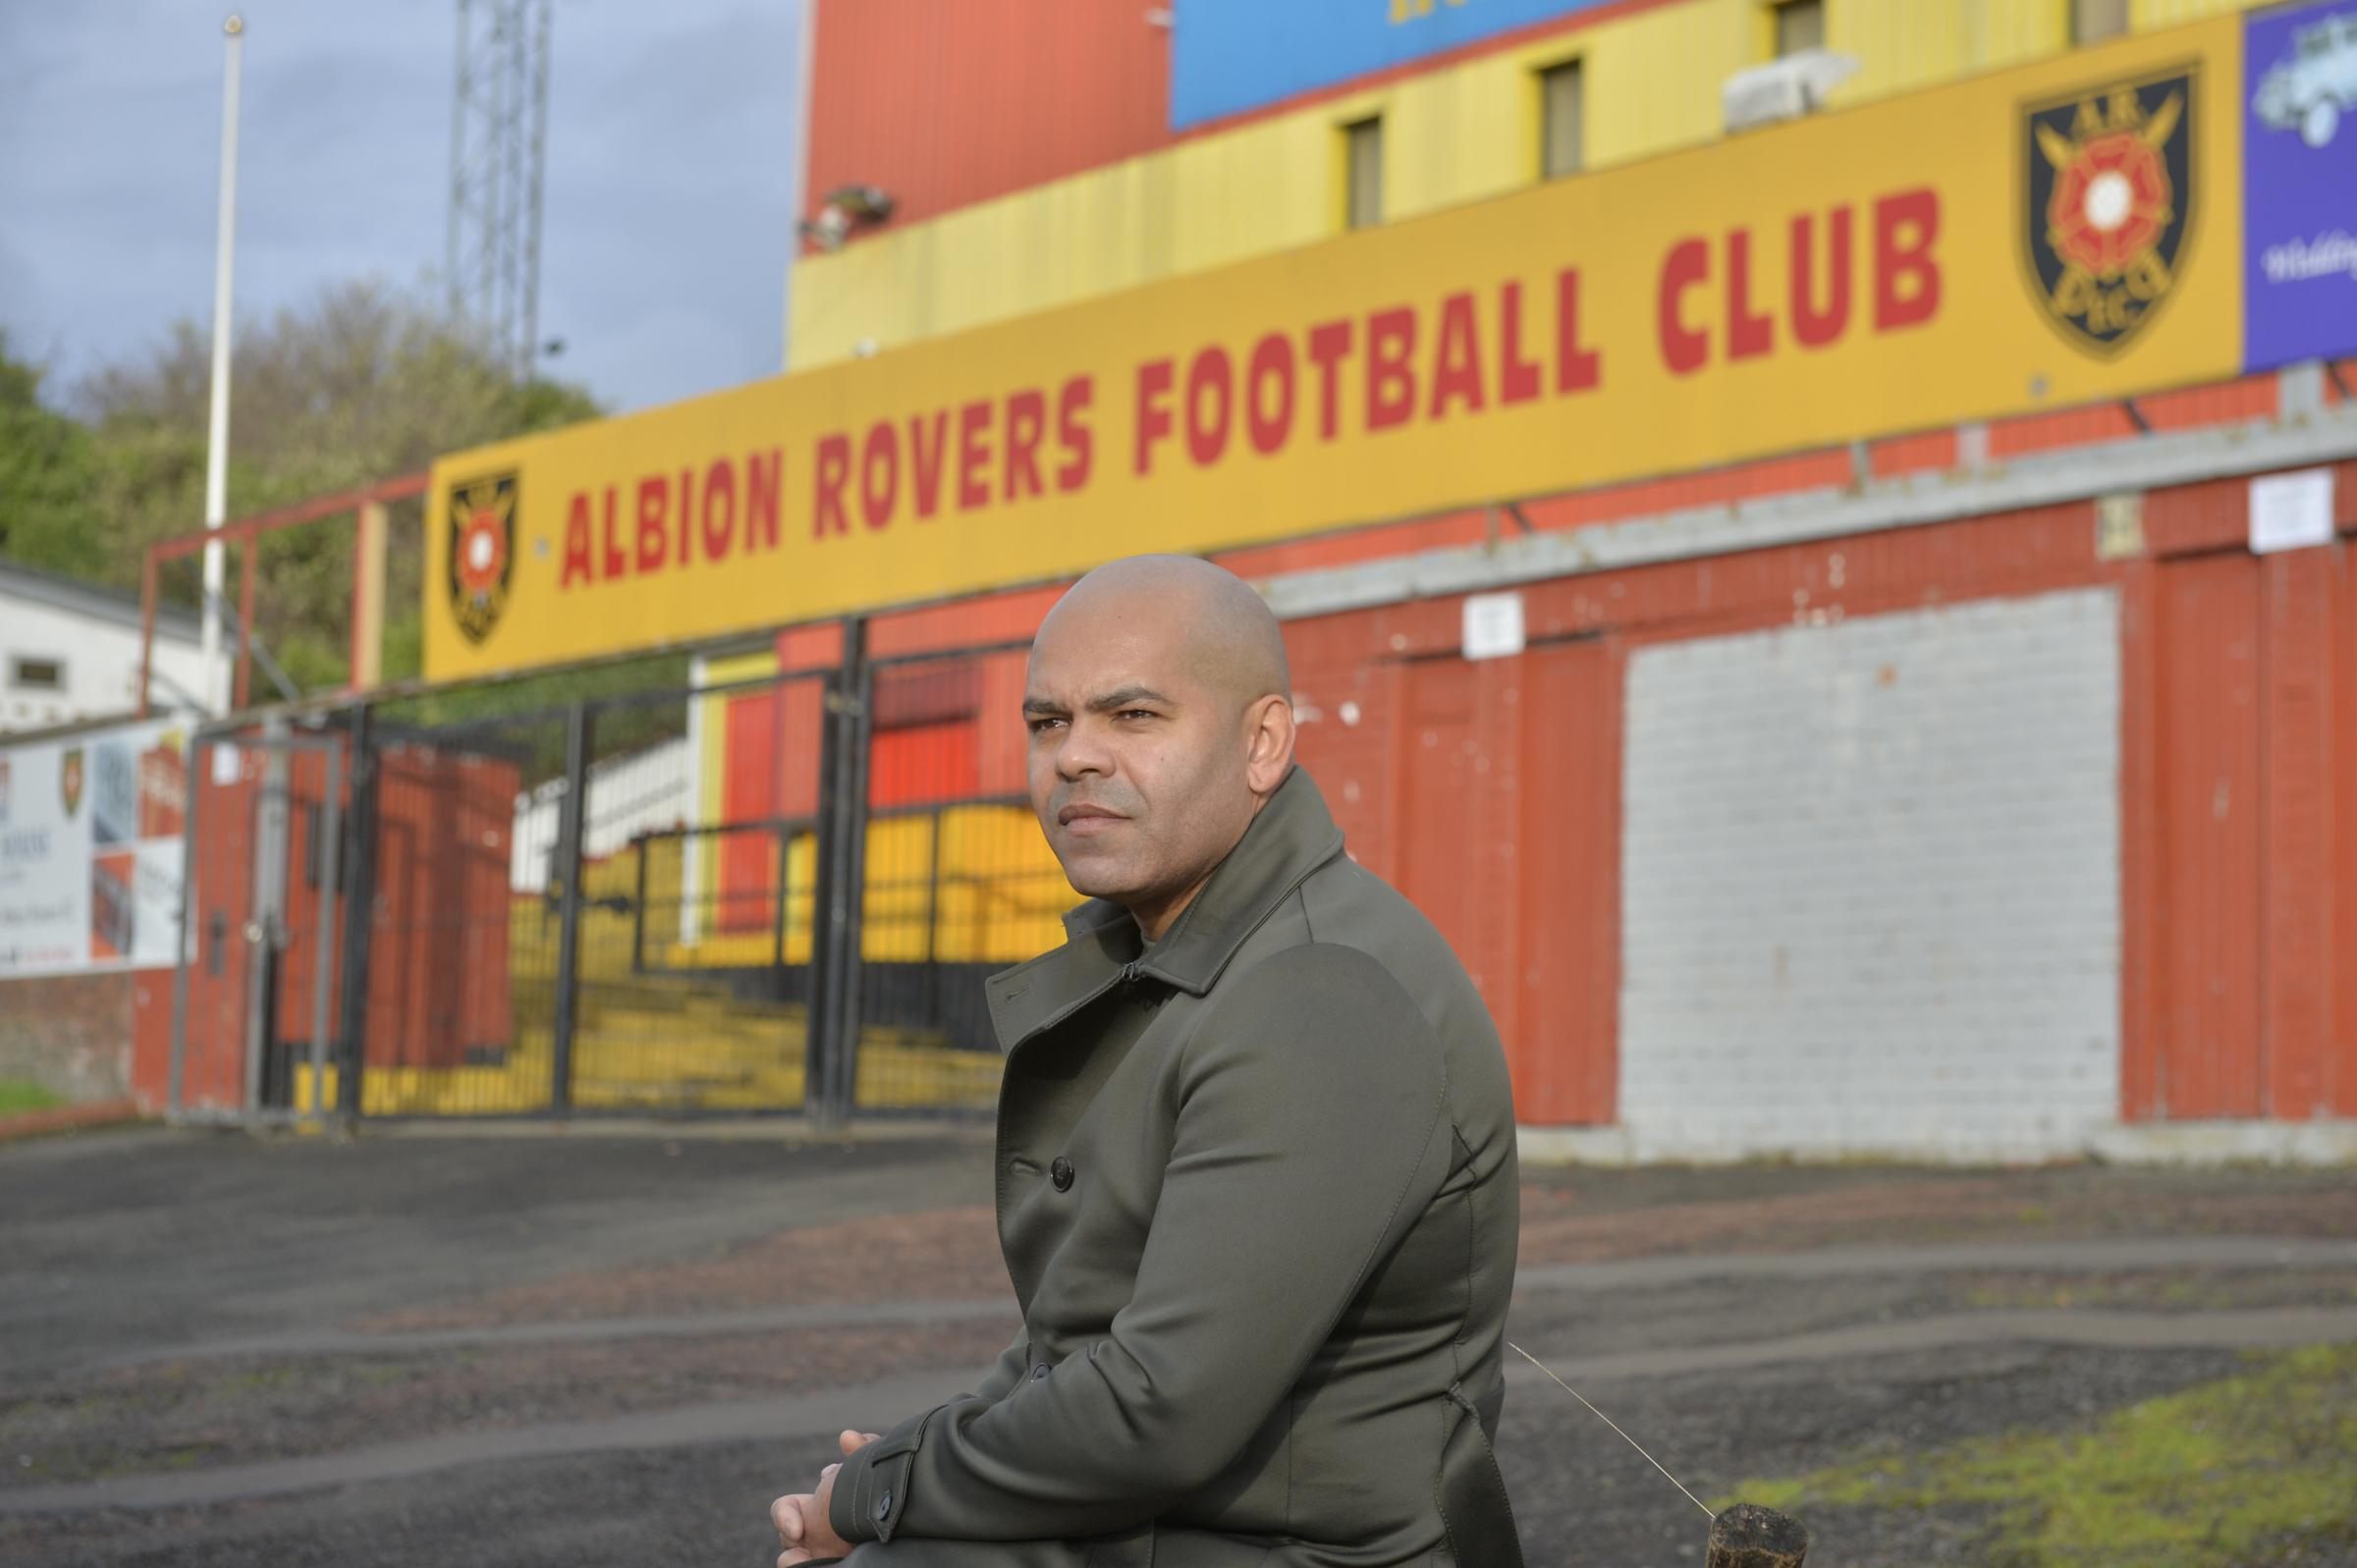 Kevin Harper has somehow taken Albion Rovers to the edge of safety